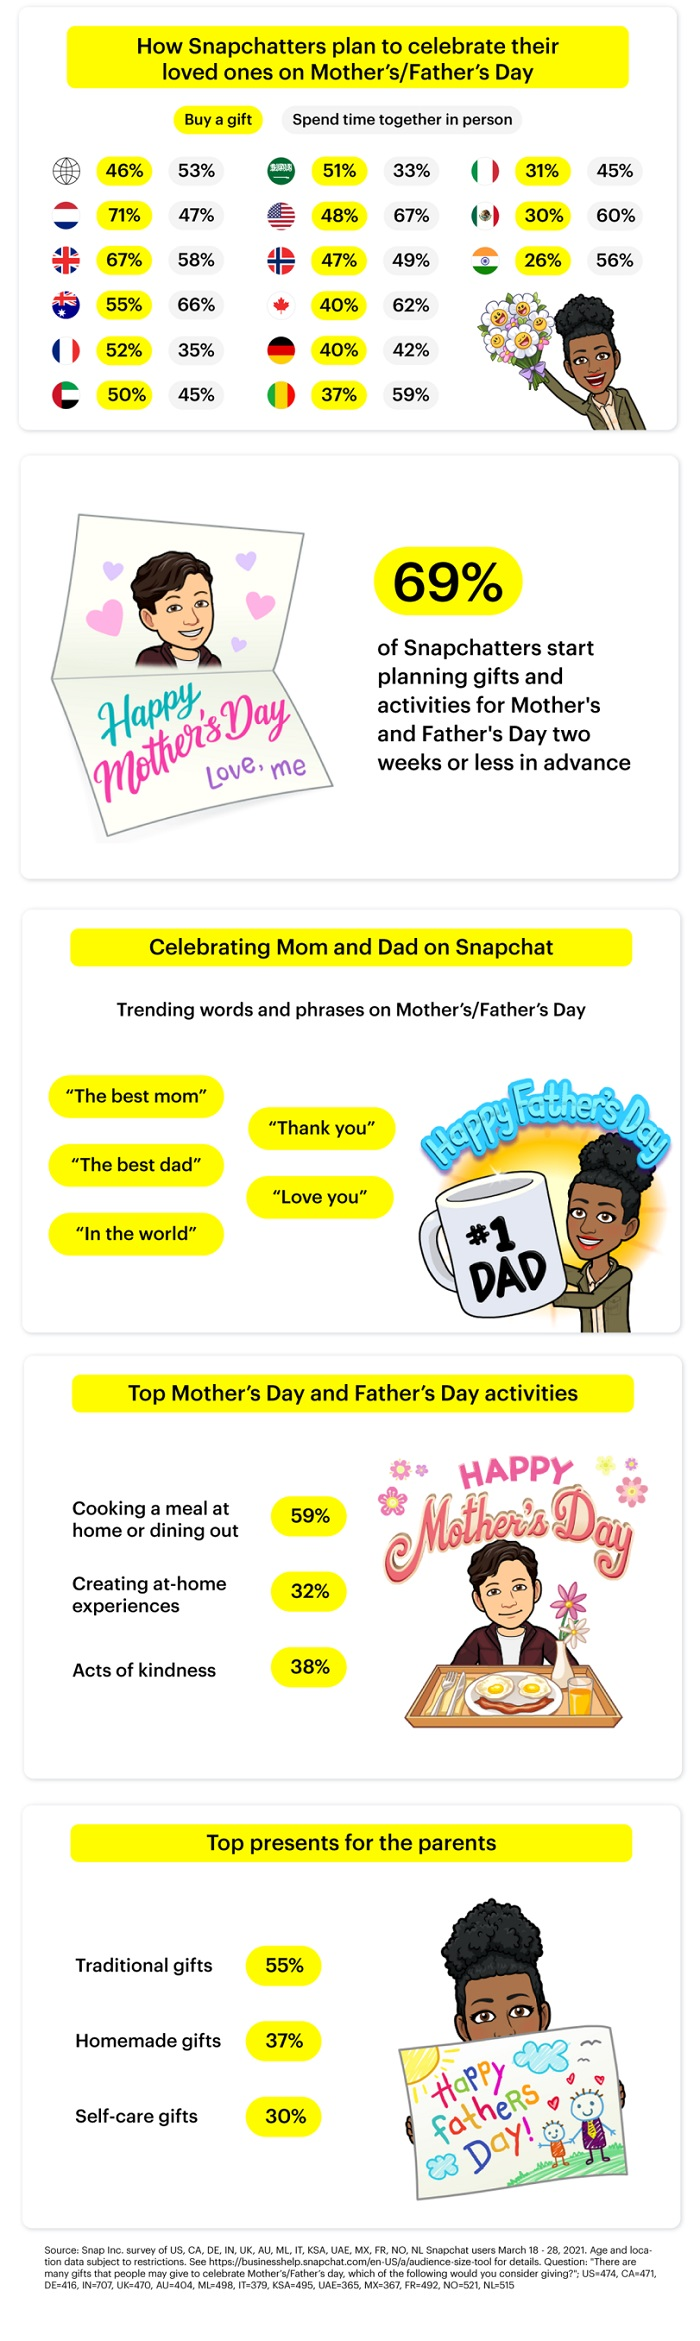 Snapchat Mothers and Fathers Day insights